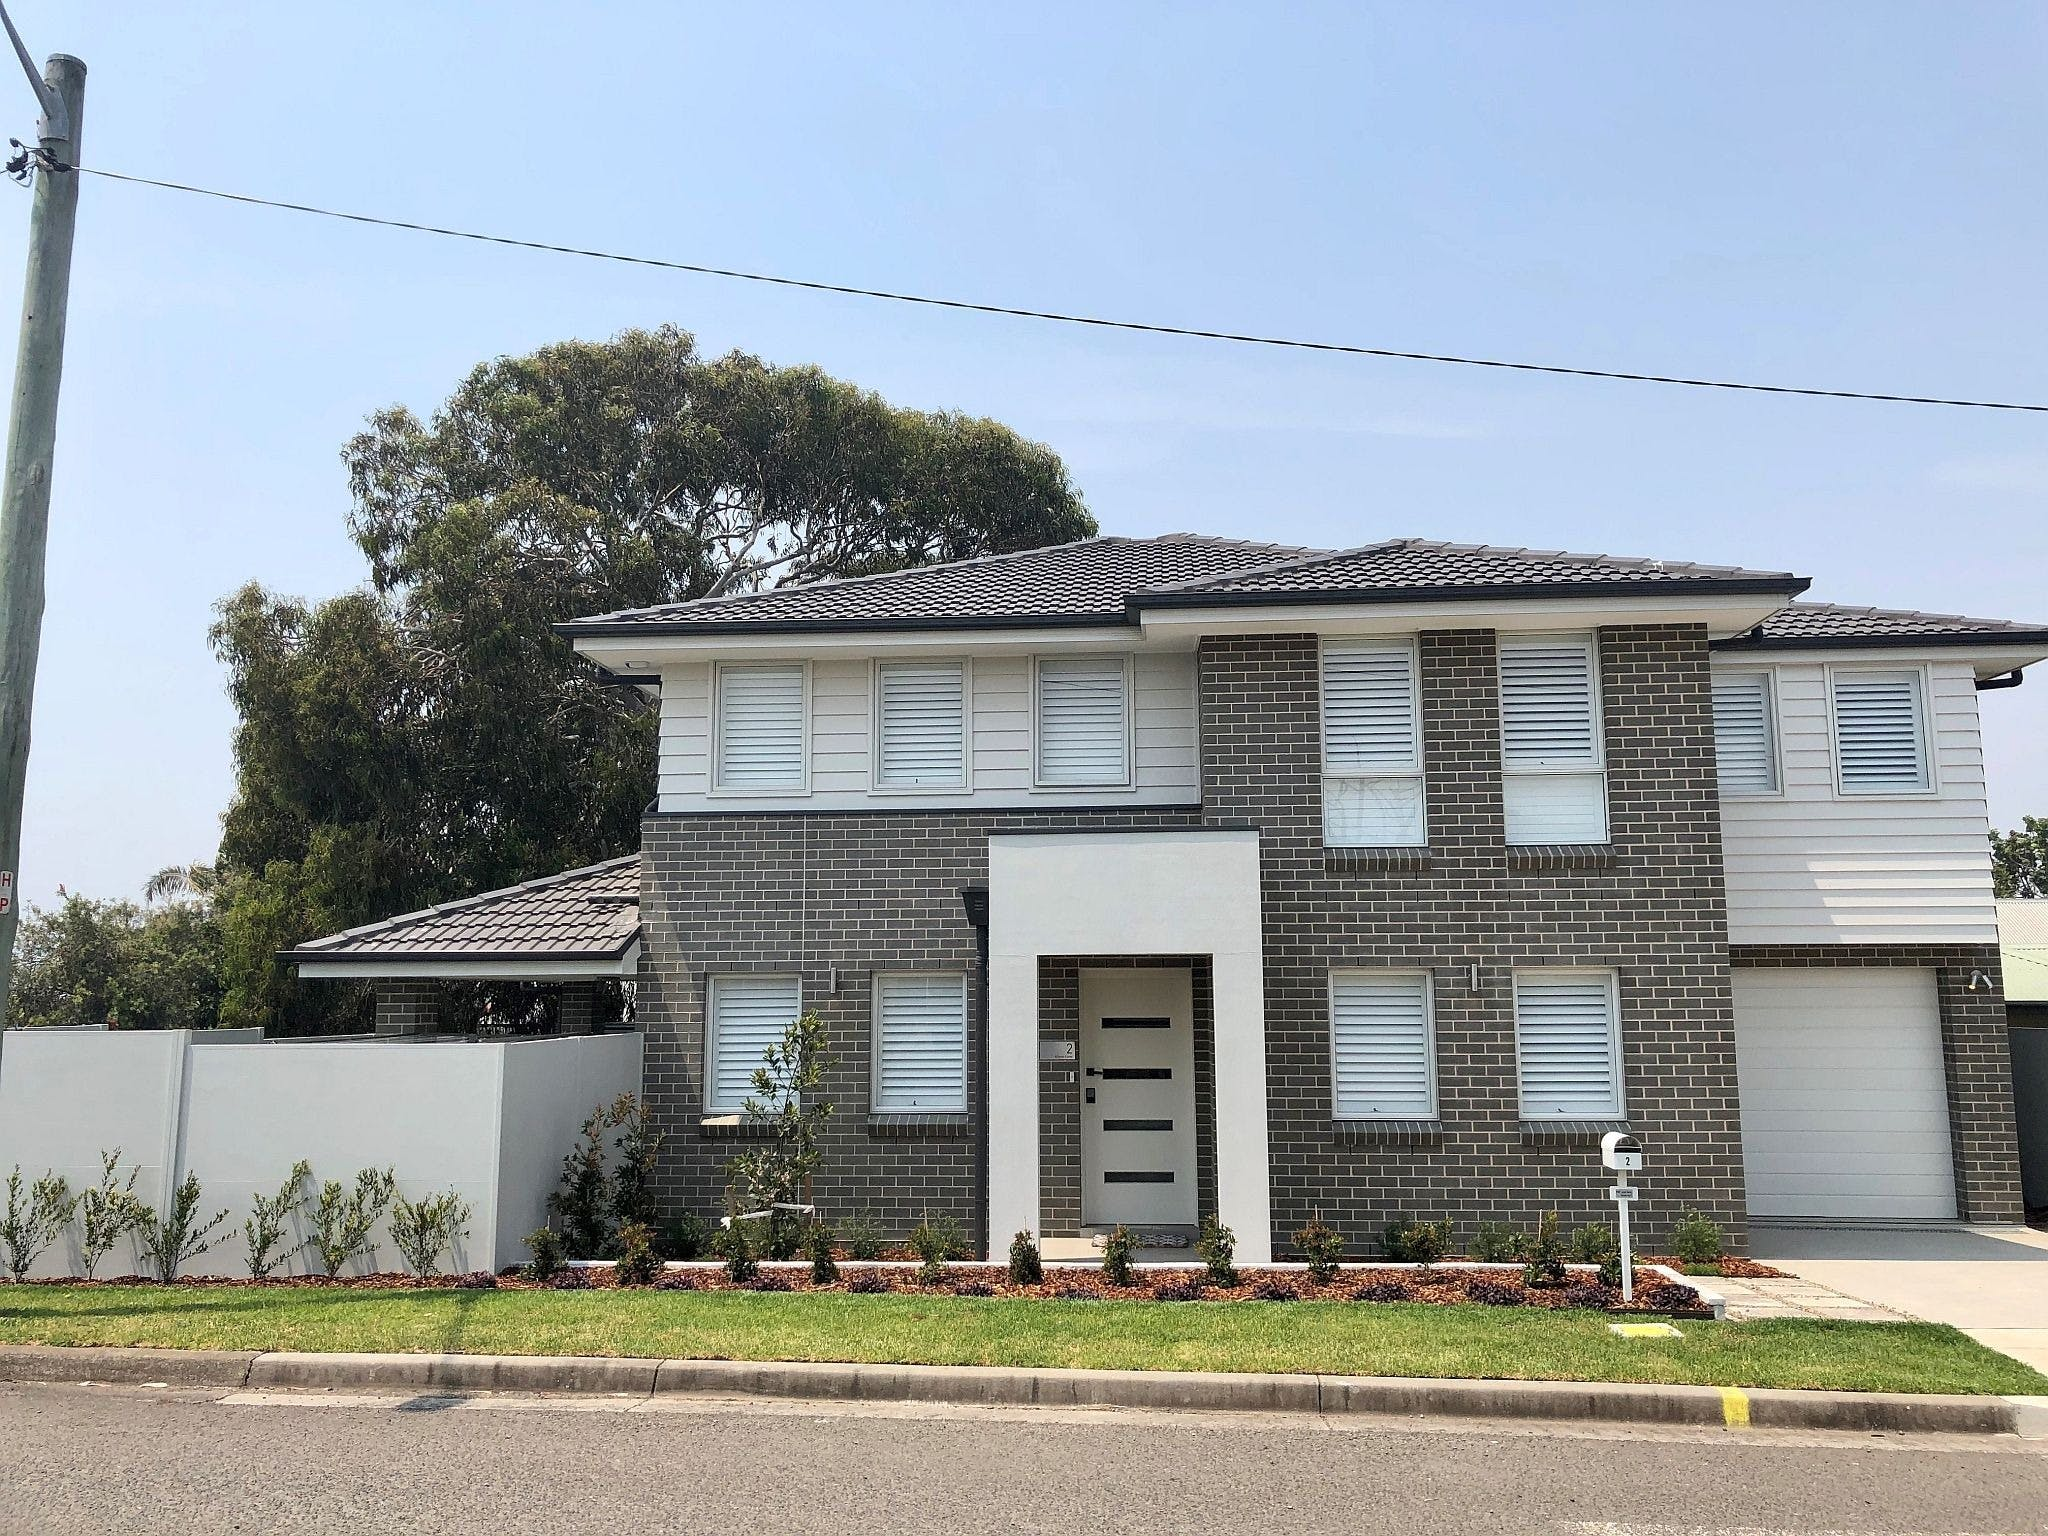 2 Allens Lane - Accommodation Ballina